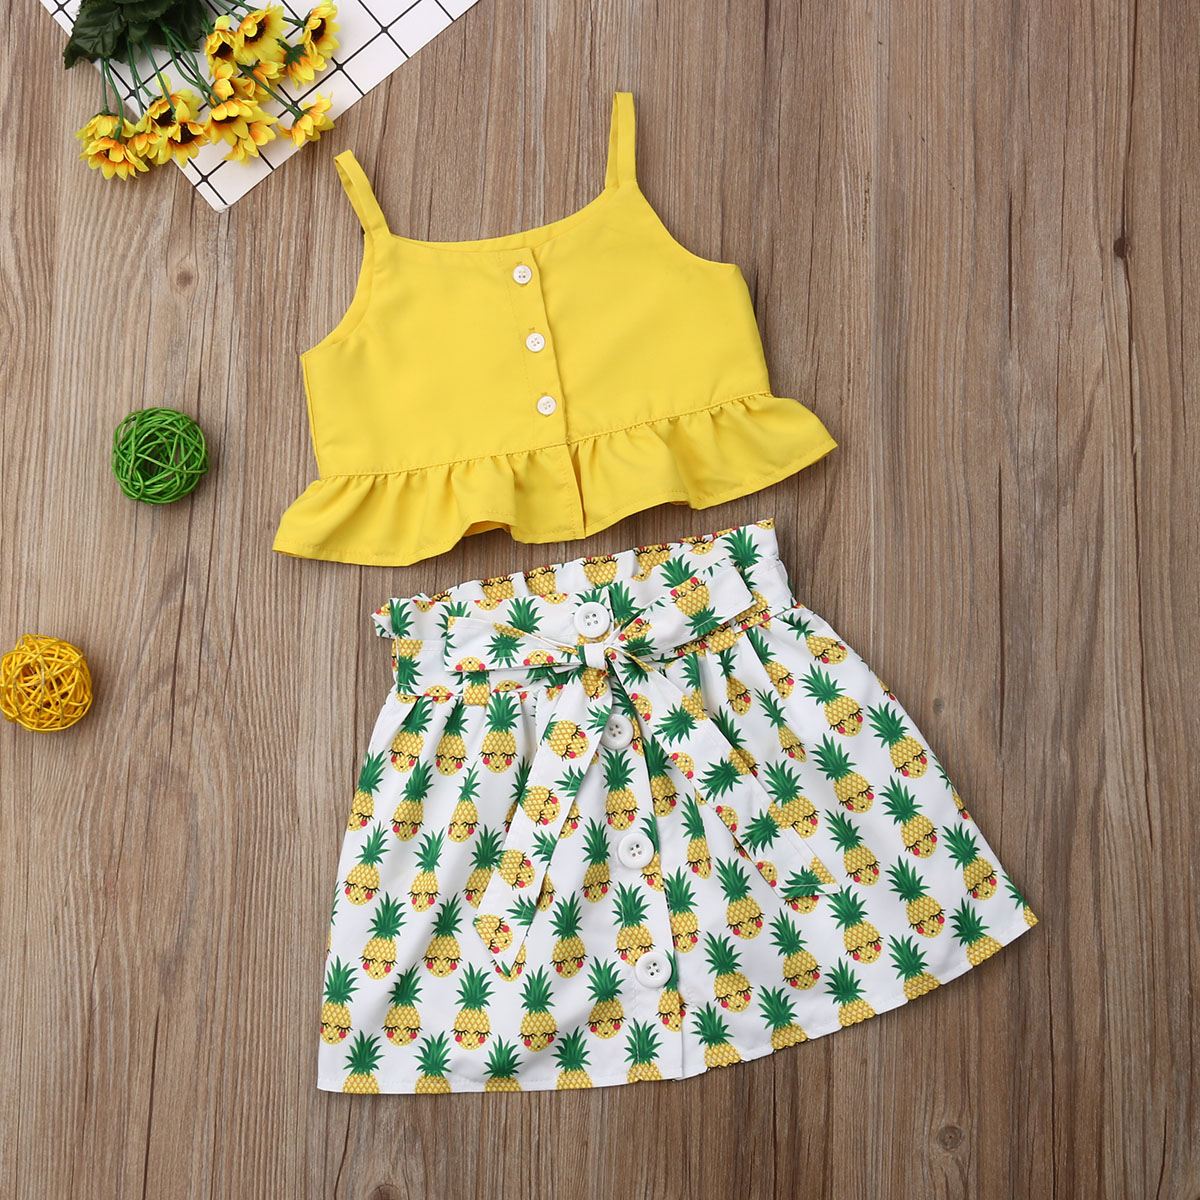 2019 2pcs Newborn Kid Baby Girl Sleeveless Tops Pineapple Skirts Outfit Summer Clothes Set